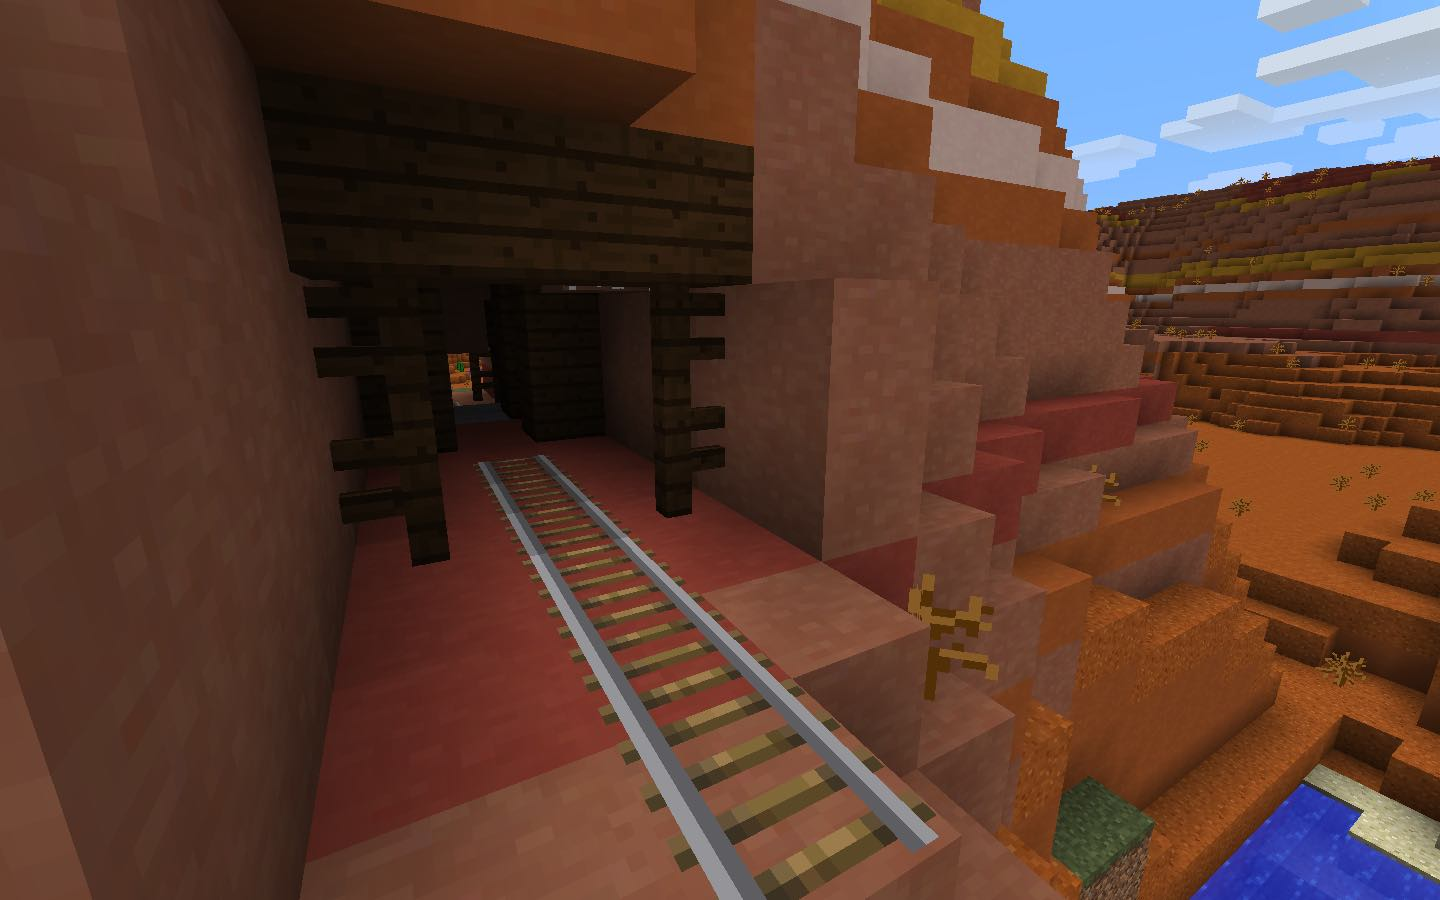 Minecraft how to find abandoned mine shafts